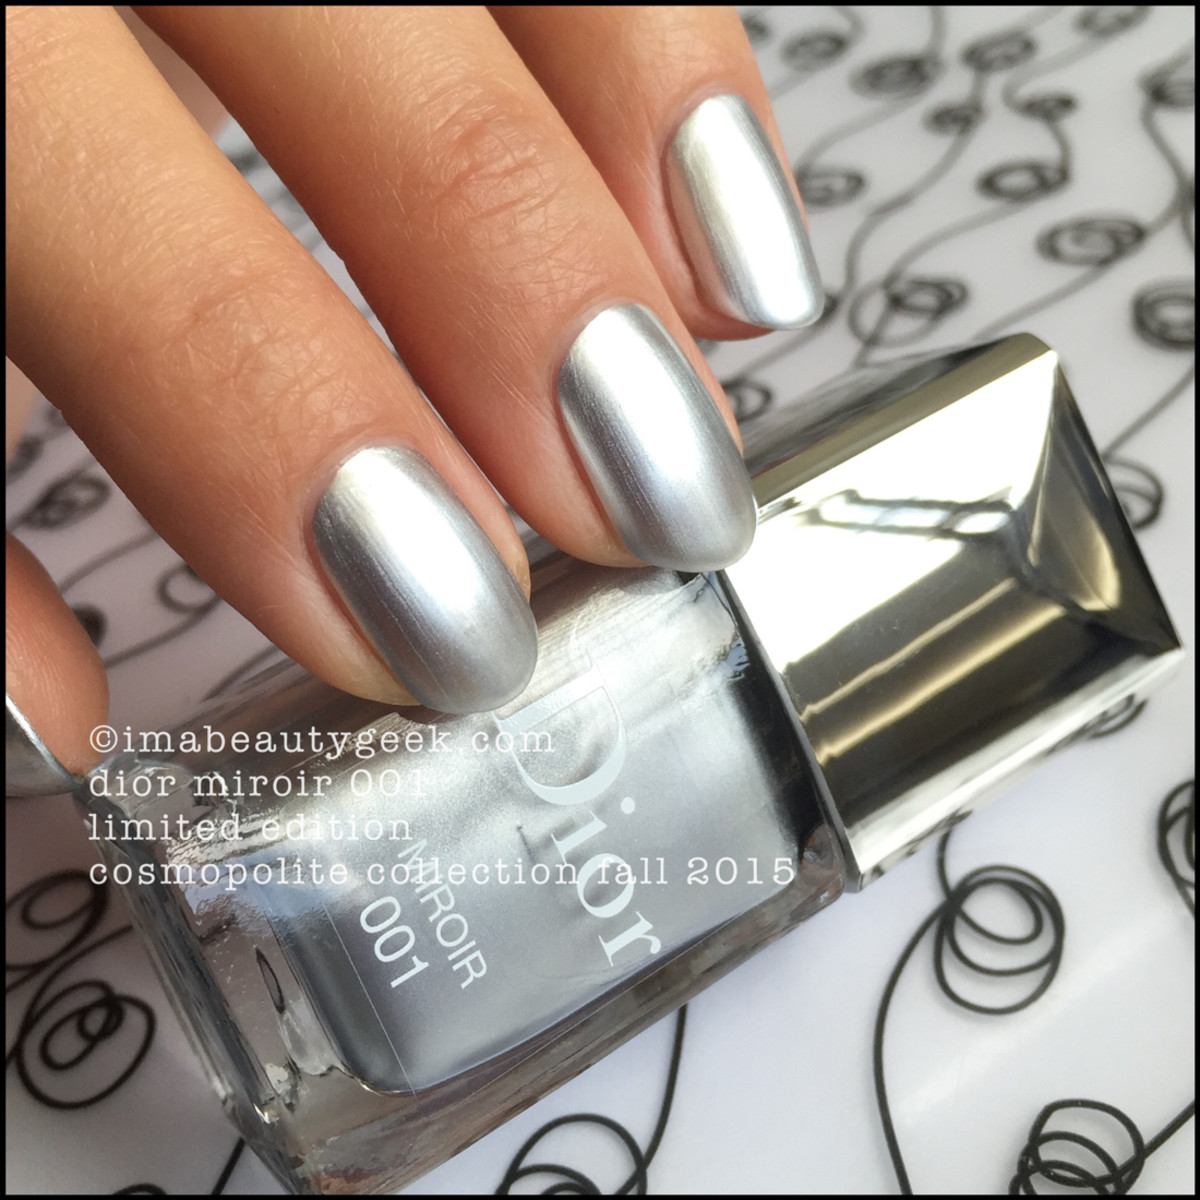 Dior Miroir Nail Polish 001 Fall 2015 Limited Edition Cosmopolite Collection